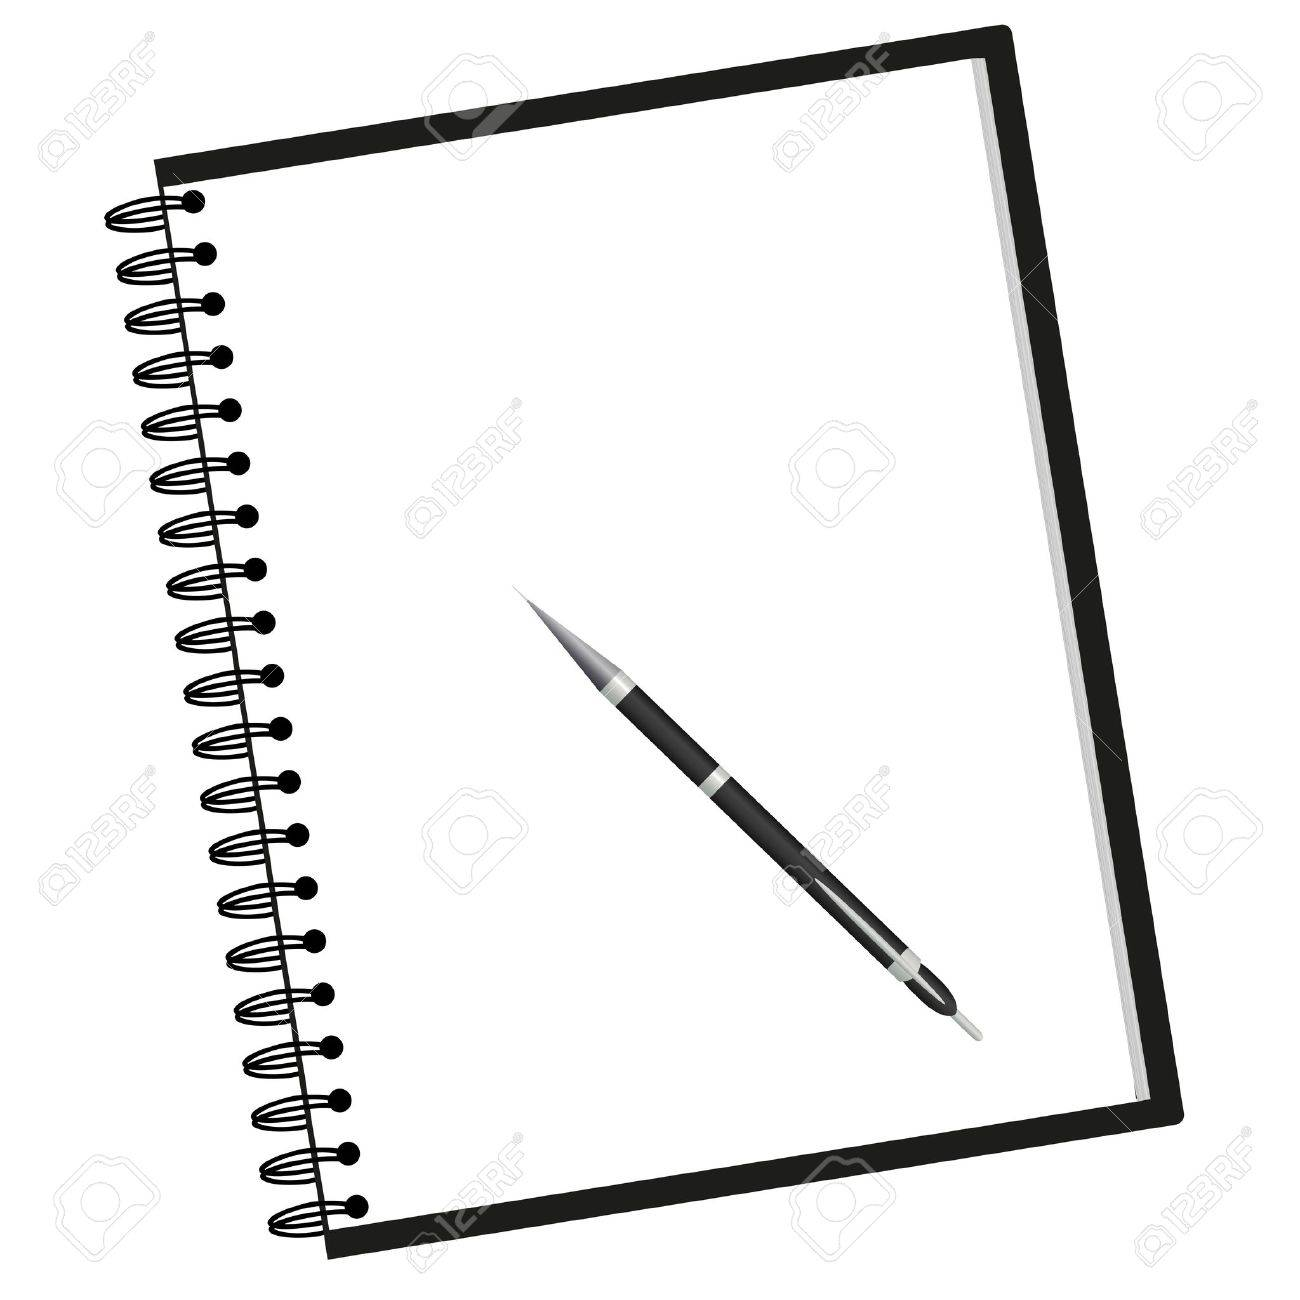 notebook and pen royalty free cliparts, vectors, and stock